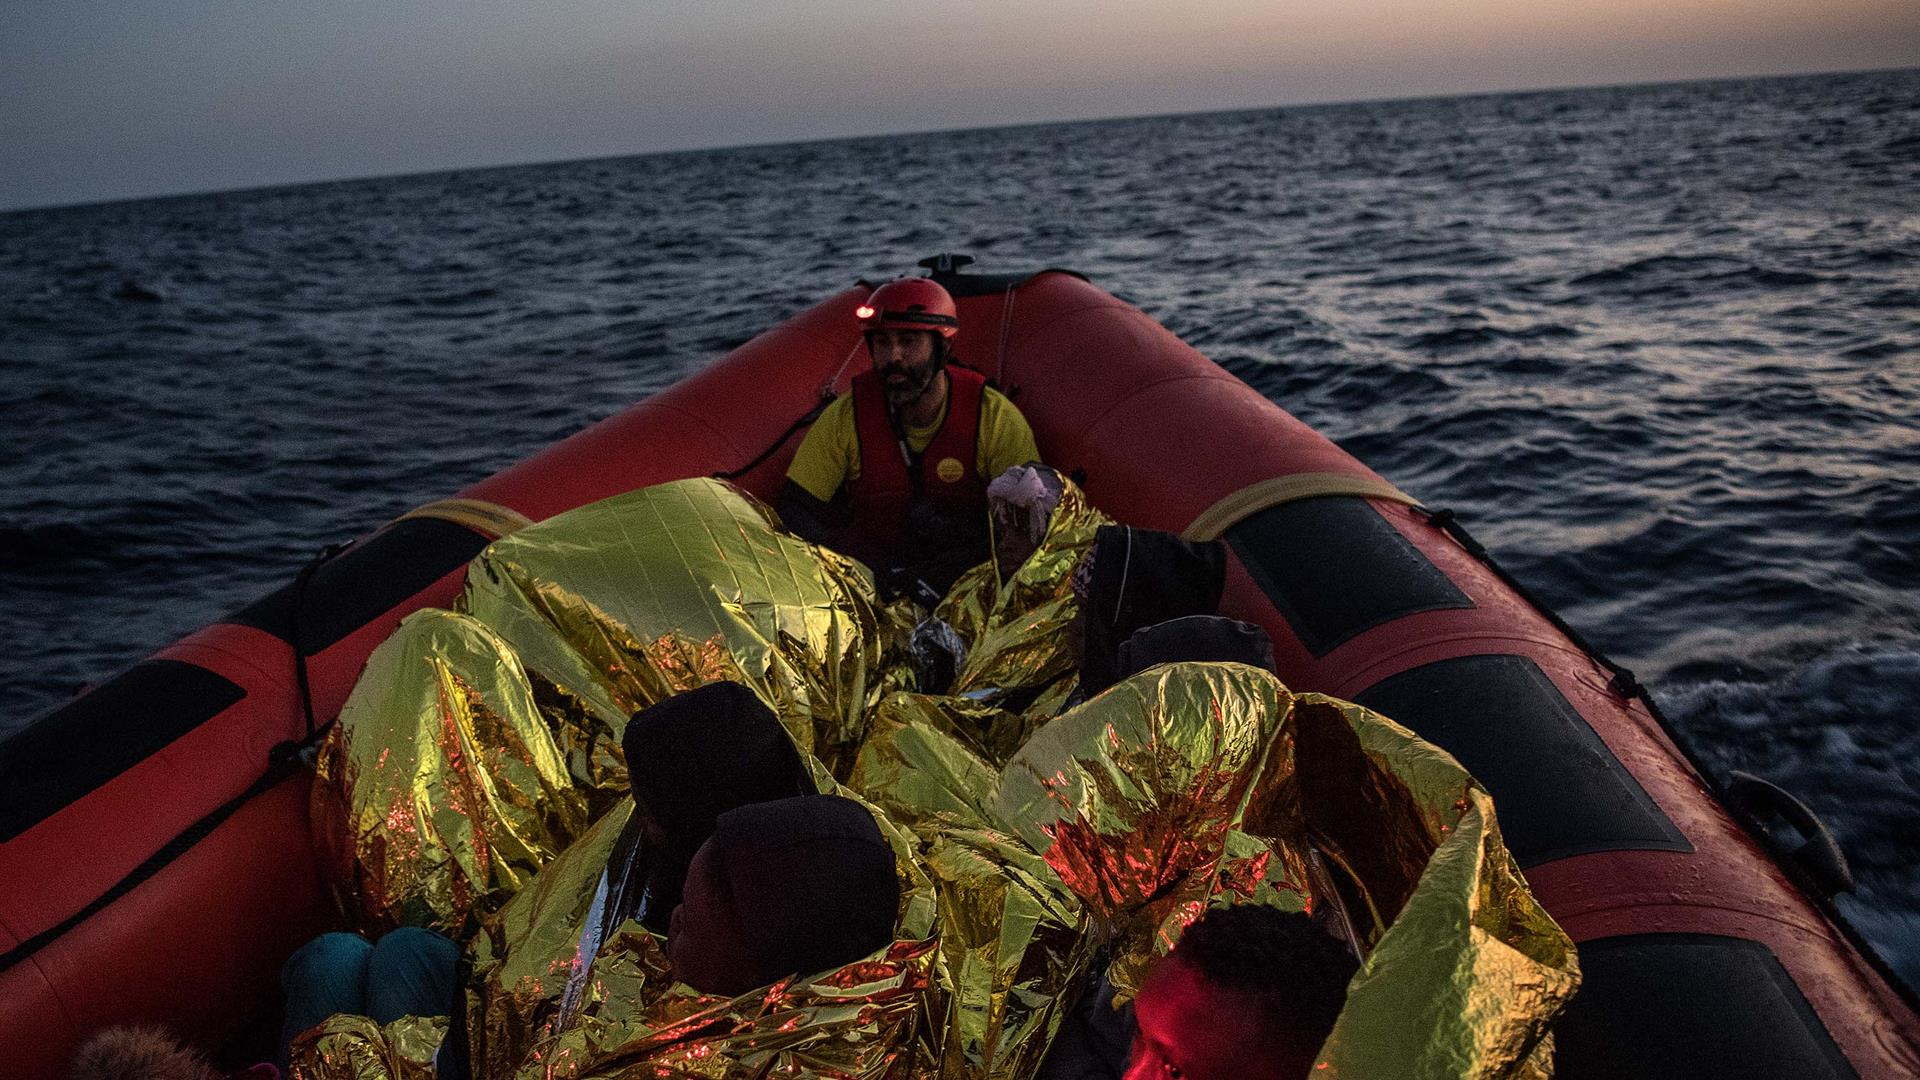 Migranti Libia Mediterraneo David Ramos Getty